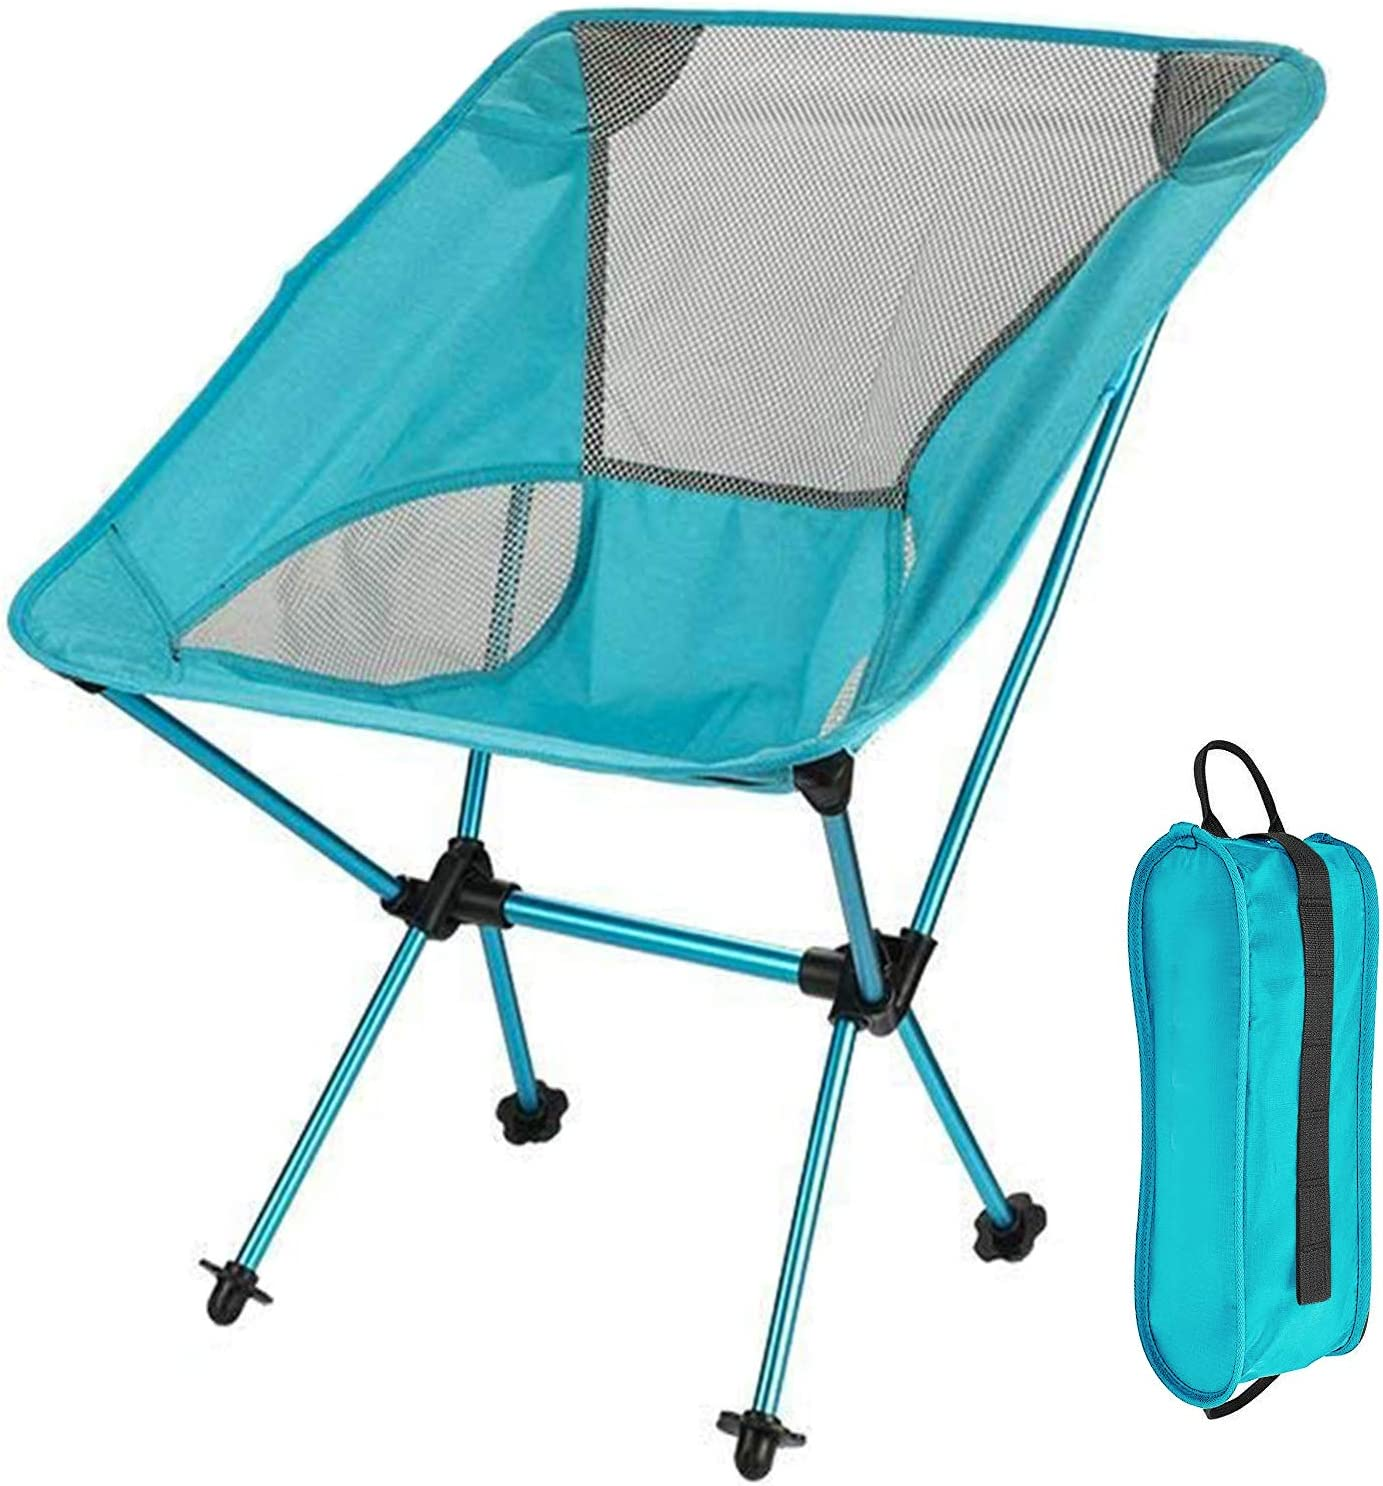 Folding Camping Chair – Portable Lightweight Camp Chair with Belt and Carry Bag, Backpacking Chair, Compact and Heavy Duty 330 lbs Capacity Perfect for Outdoor, Hiking, Camping, Fishing Sky Blue